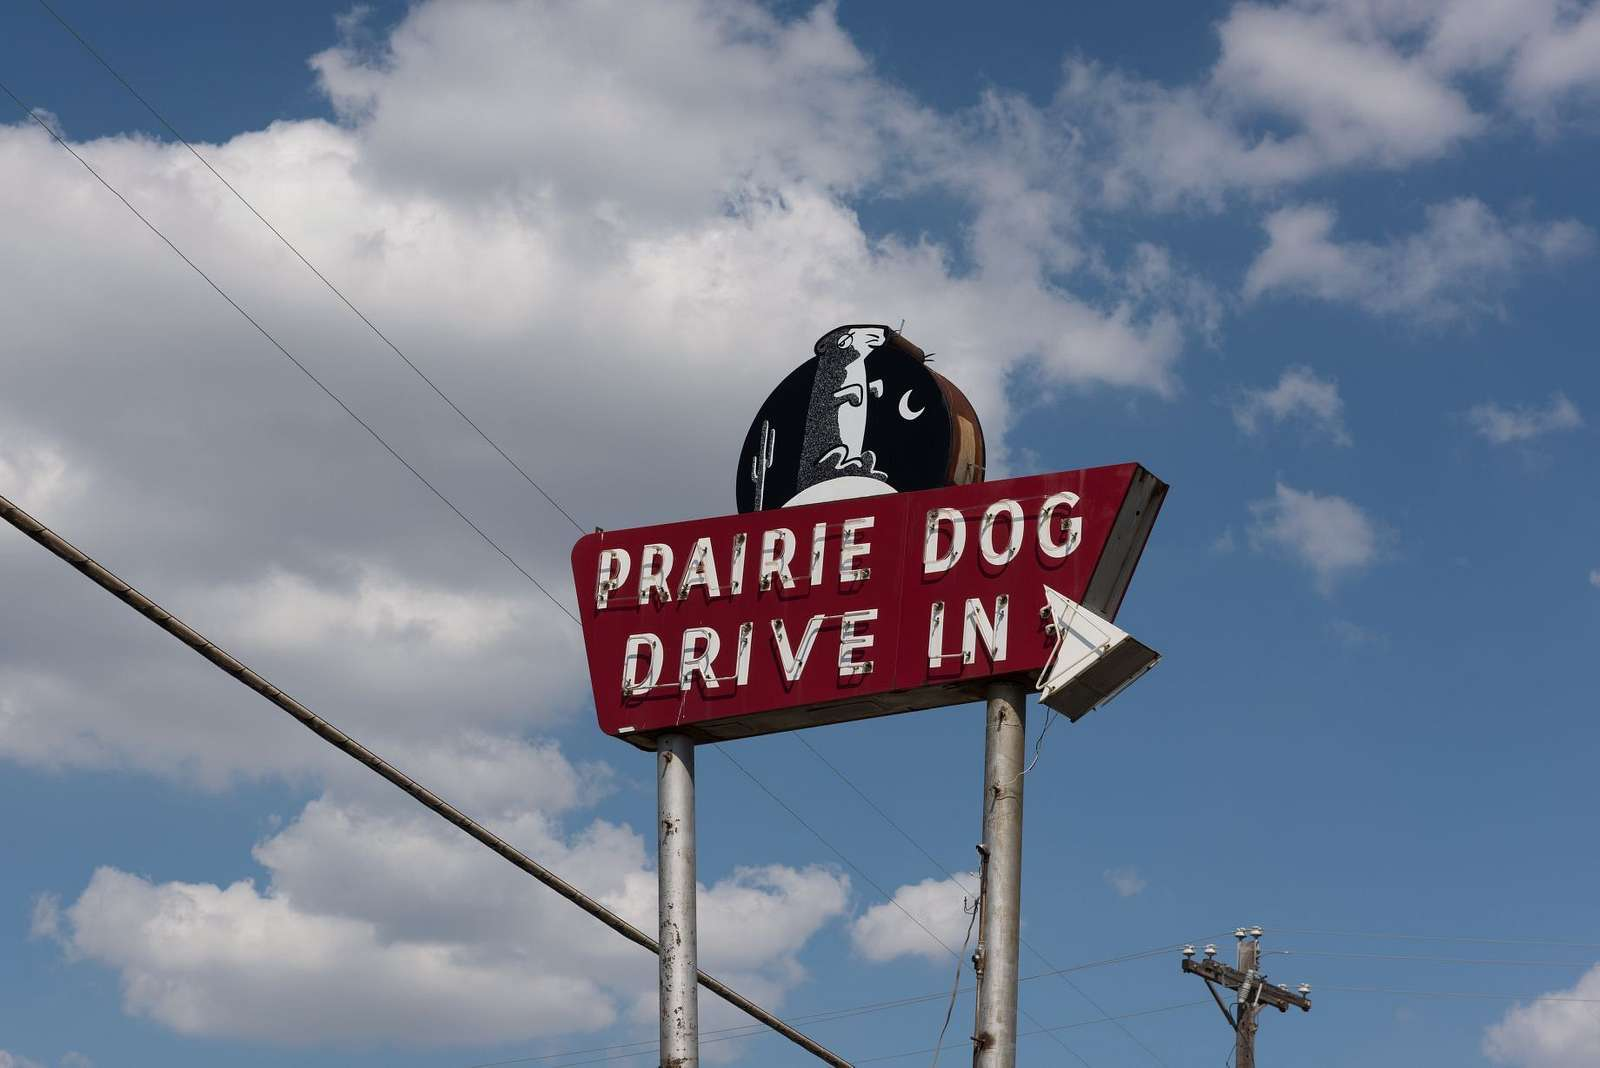 Neon sign for the Prairie Dog drive-in restaurant in Grand Prairie, Texas, along Texas Route 180, once the main road between Fort Worth and Dallas